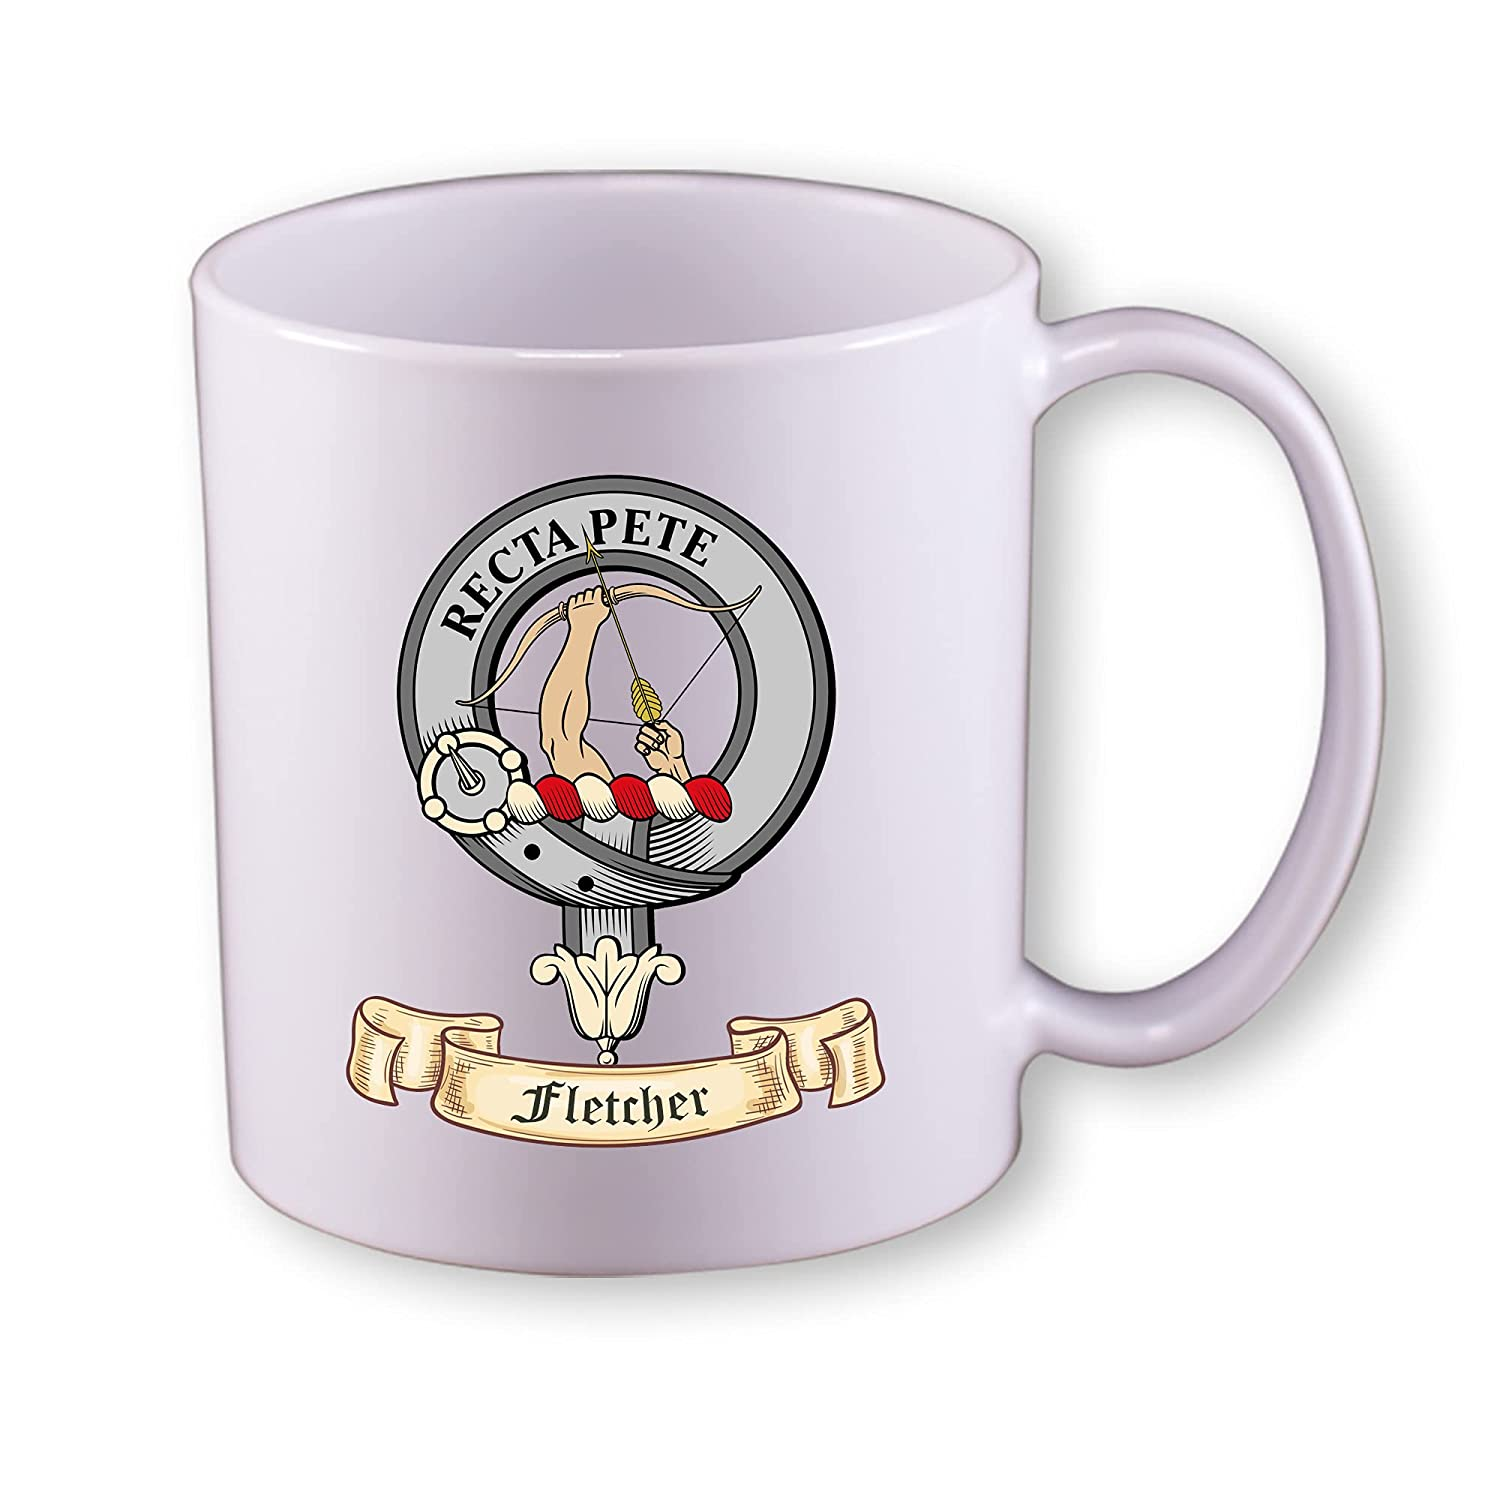 Scottish clan Fletcher- 11 oz coffee mug 2021new shipping free with cr Popular shop is the lowest price challenge tartan and